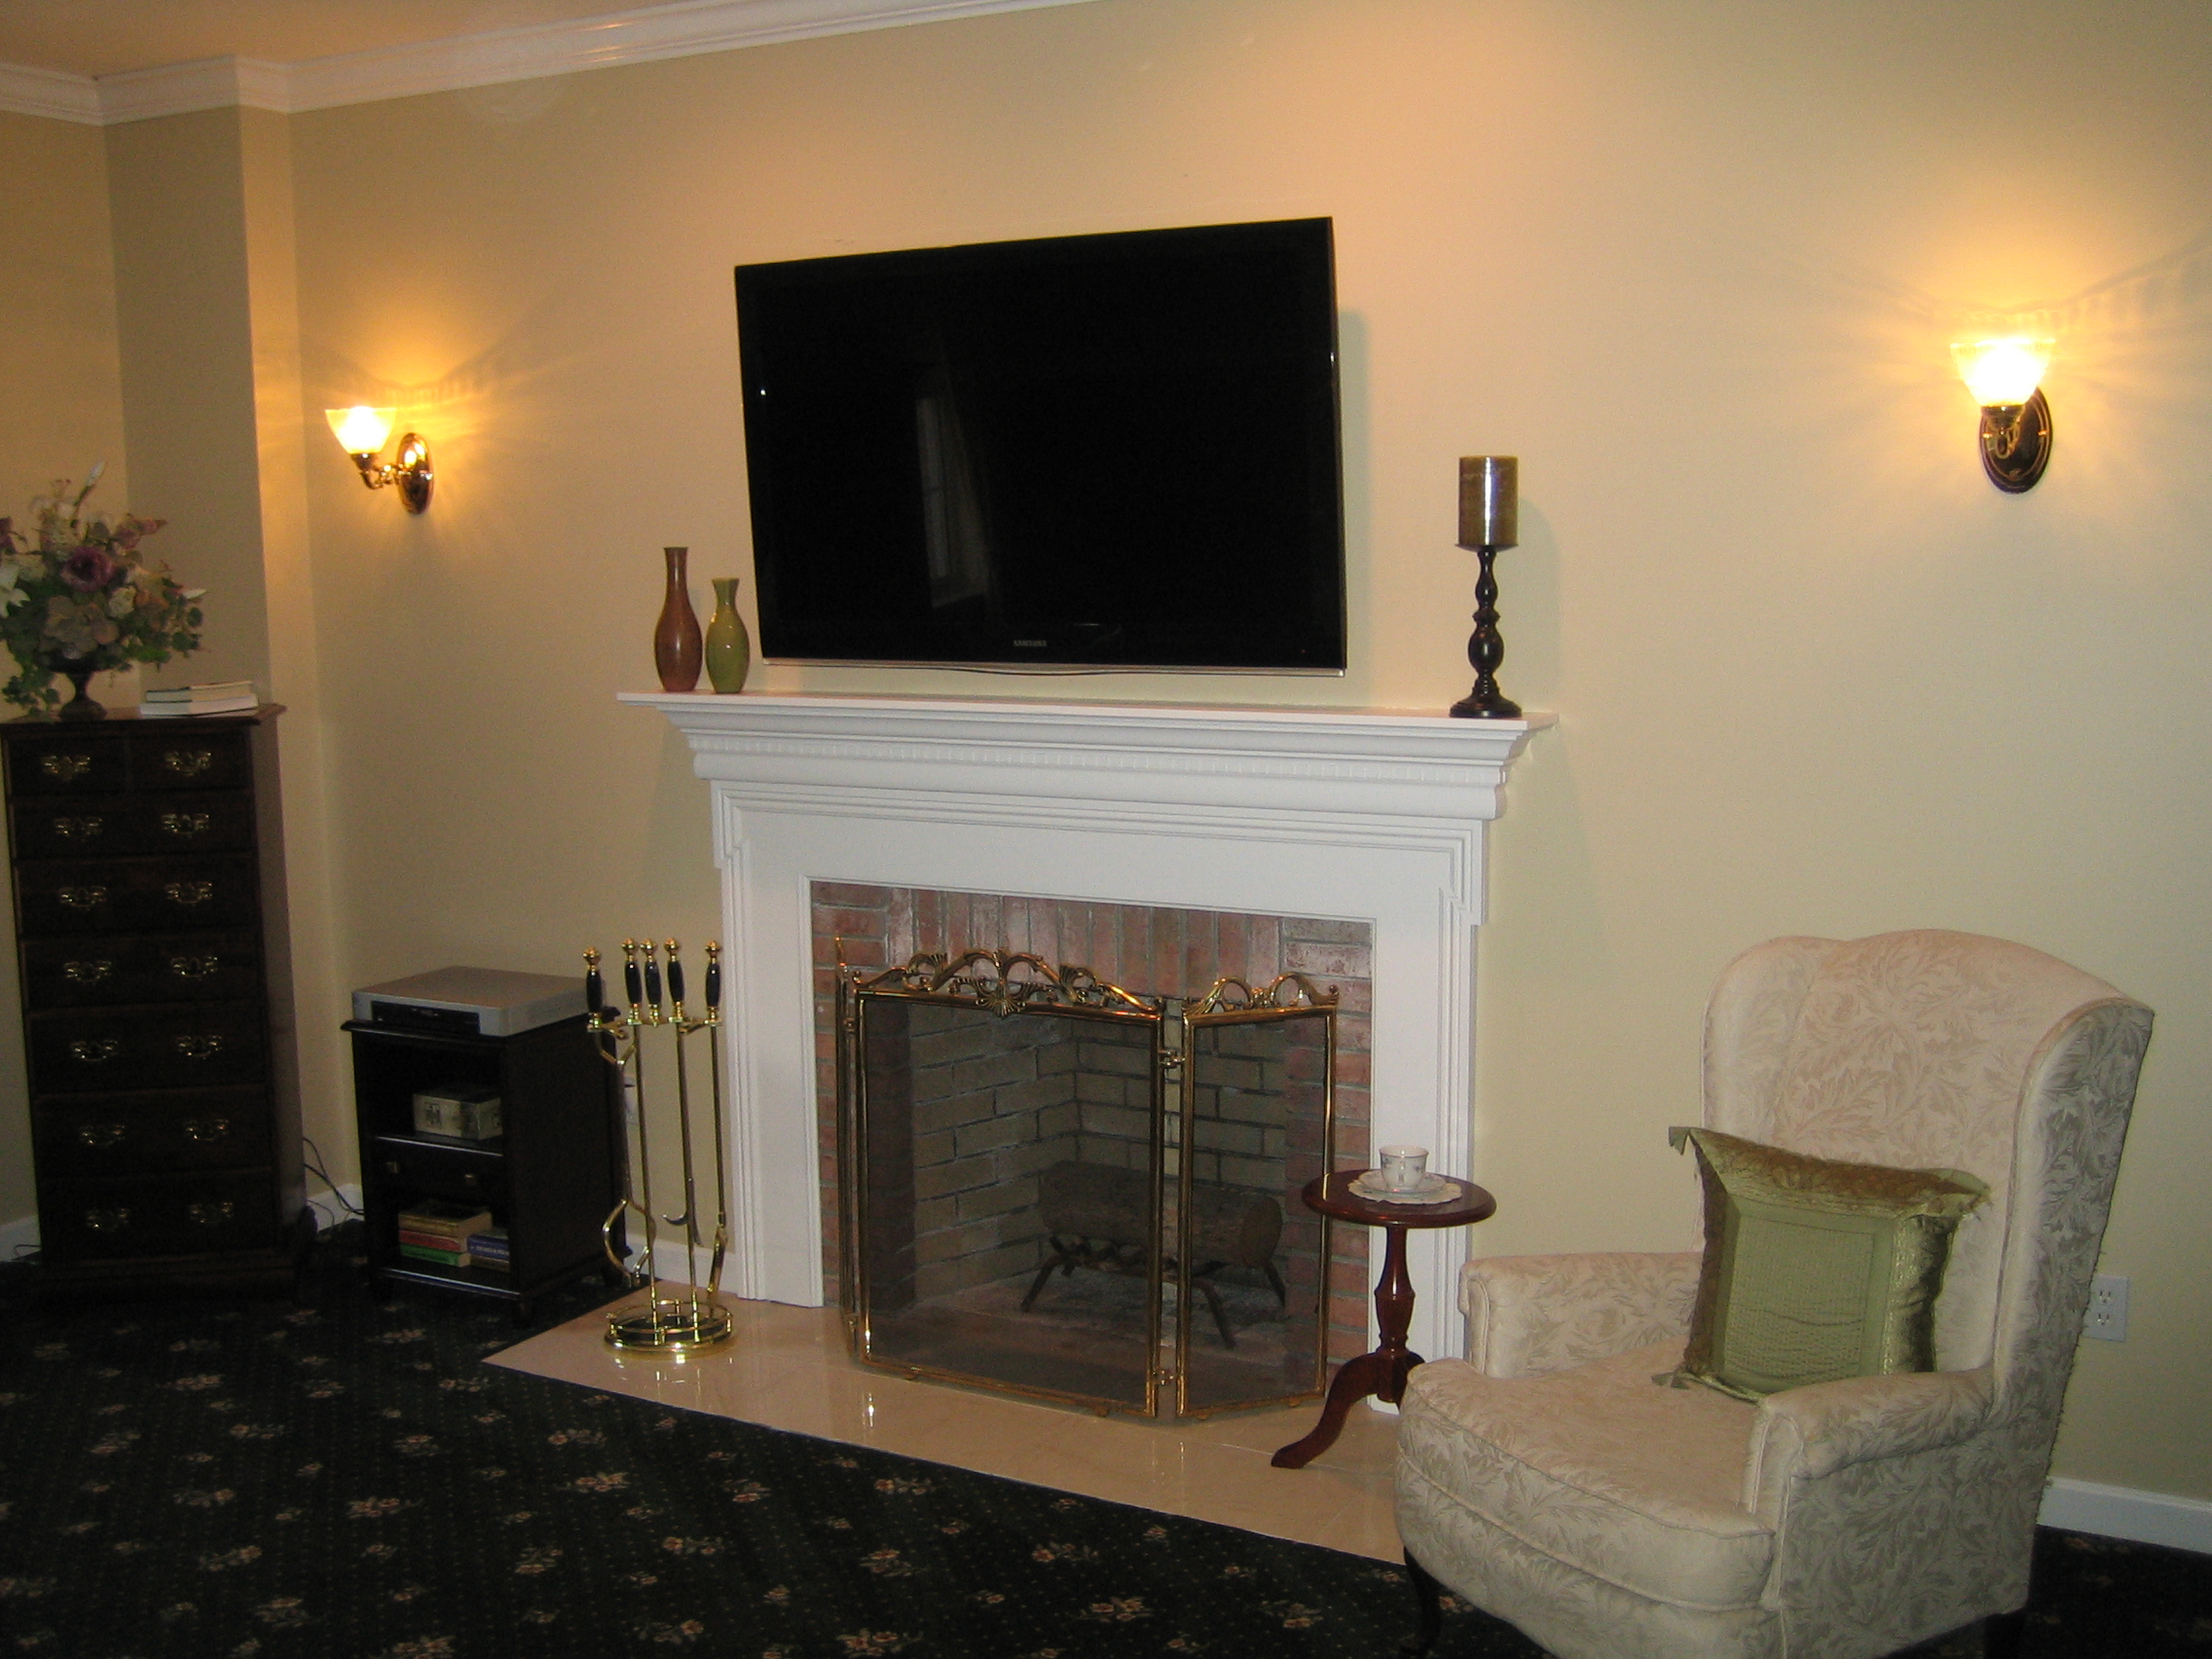 Wall Mount Tv Above Fireplace Quotes